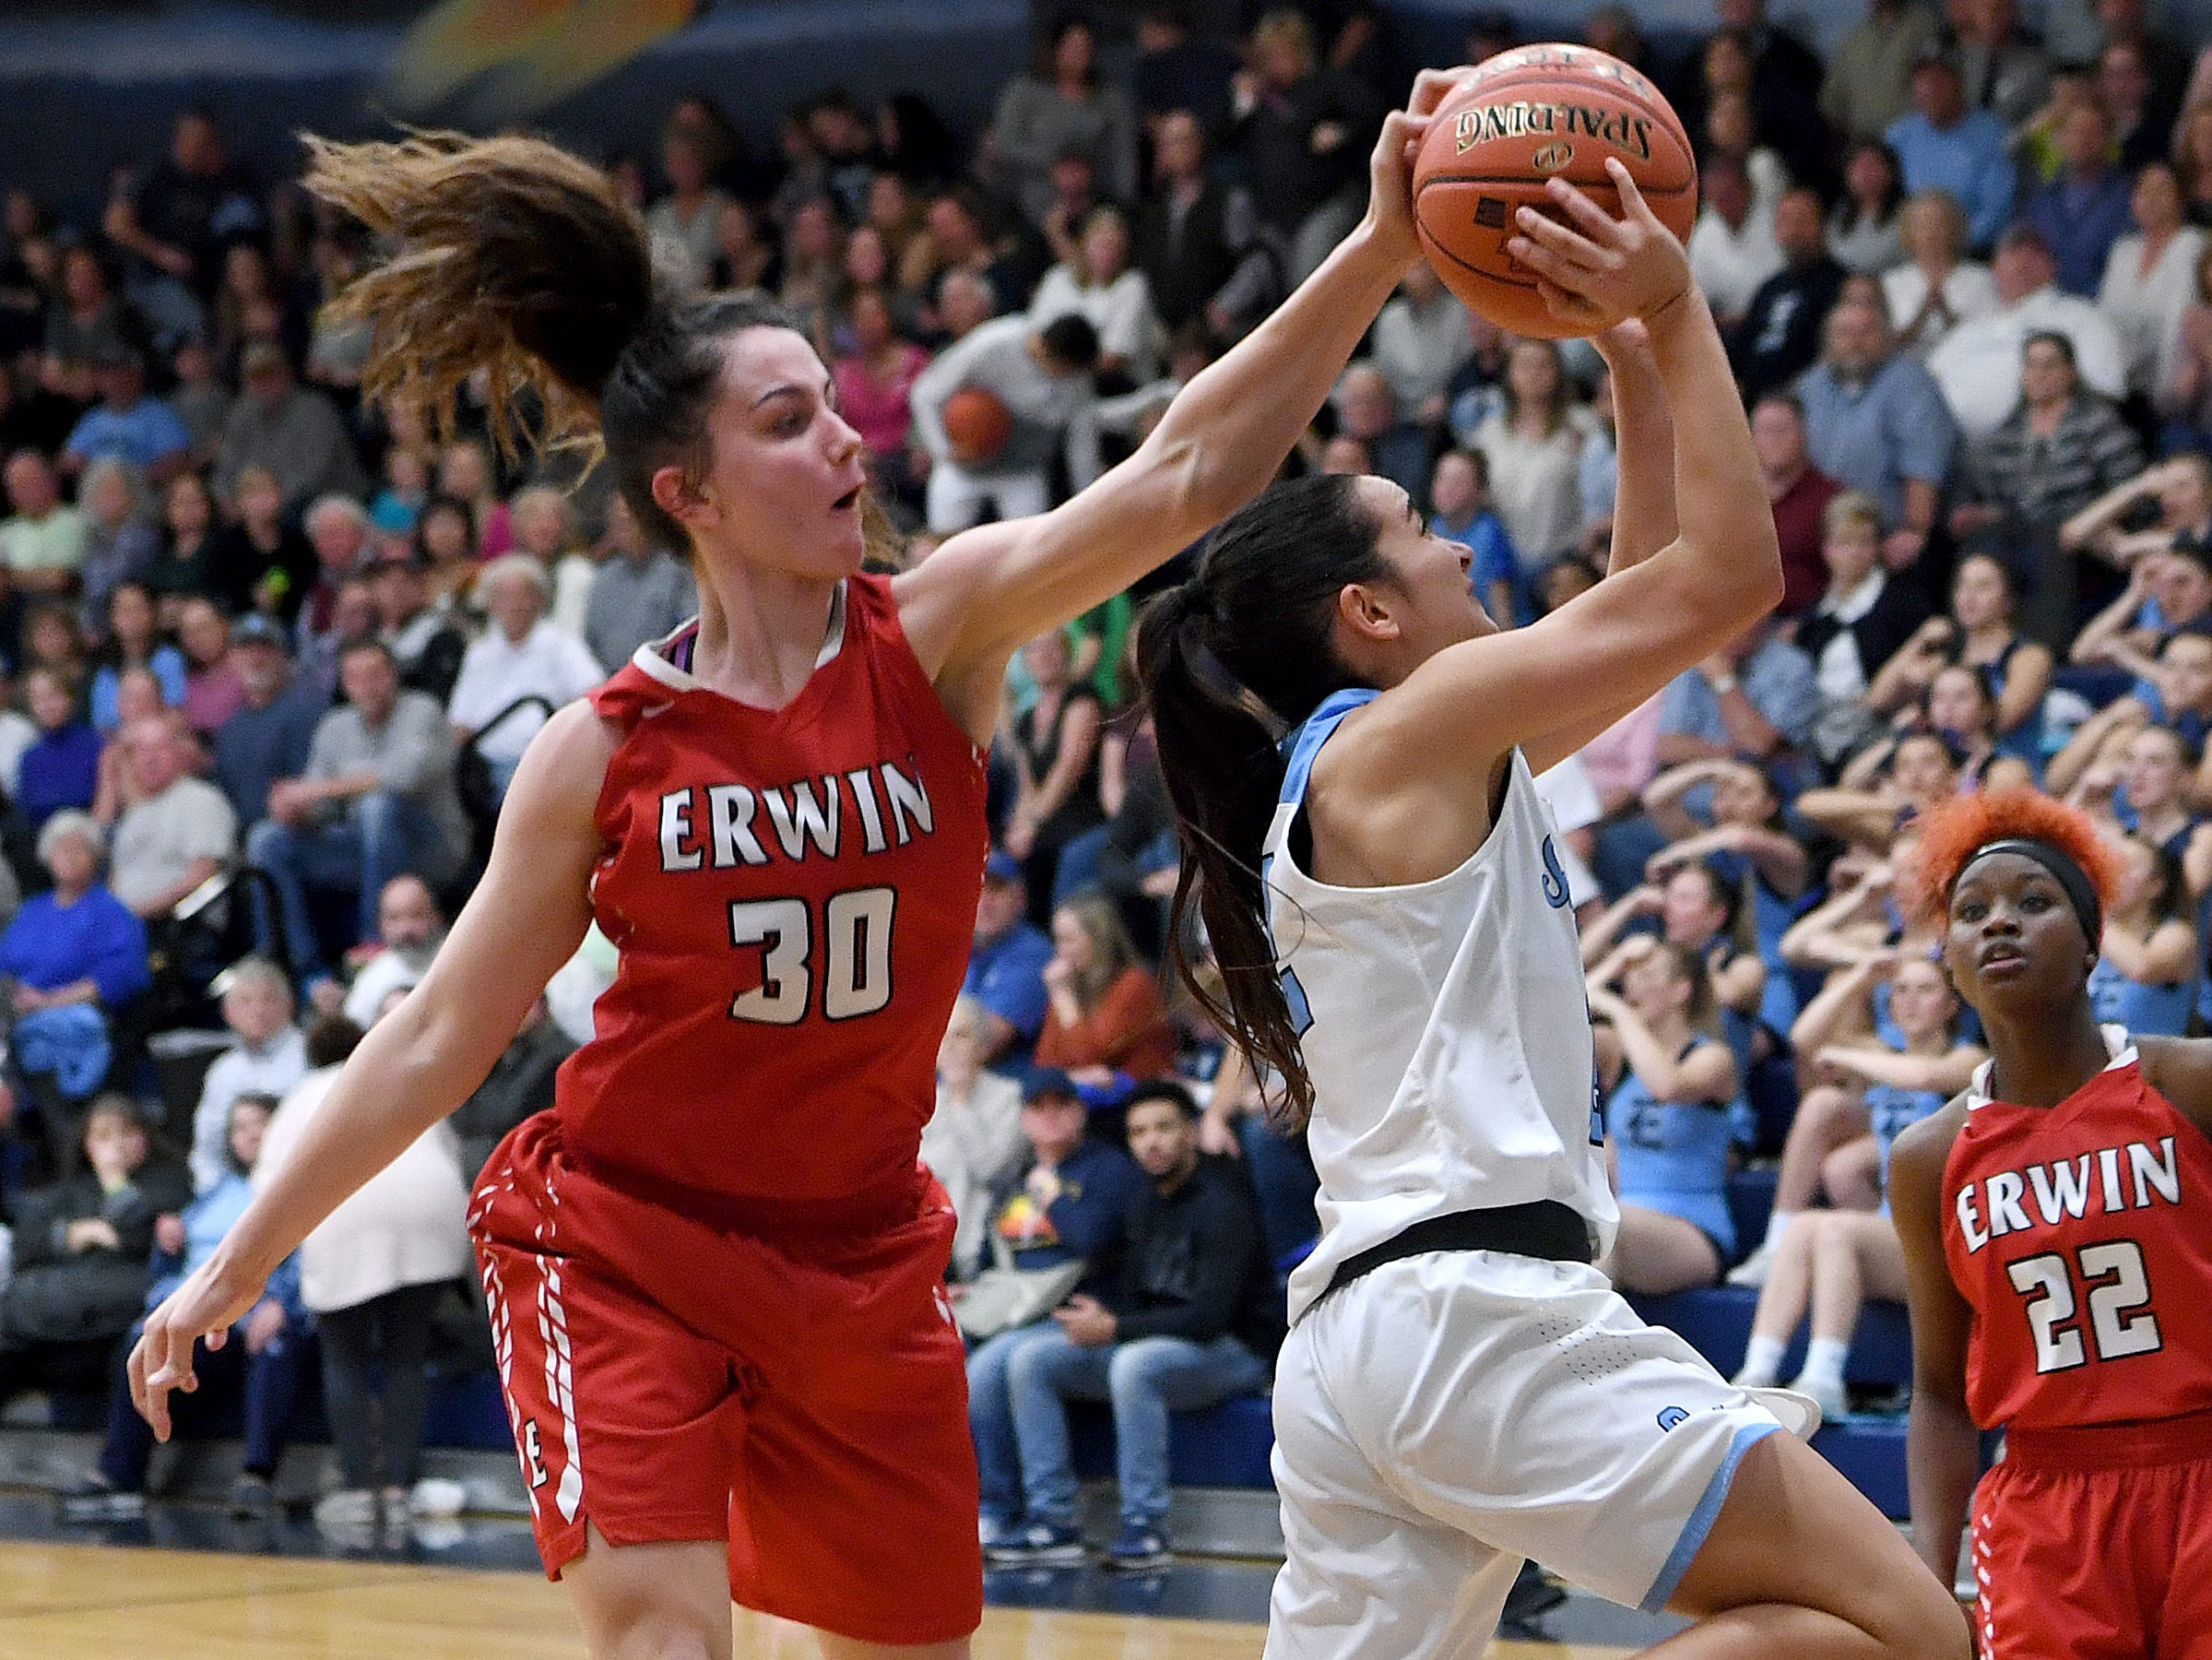 Erwin's Kaitlyn Messer gets a hand on the ball as Enka's Monica Garcia de Sivatte goes up for a shot during their game at Enka High School on Jan. 8, 2019. The Lady Warriors defeated the Sugar Jets 61-45.